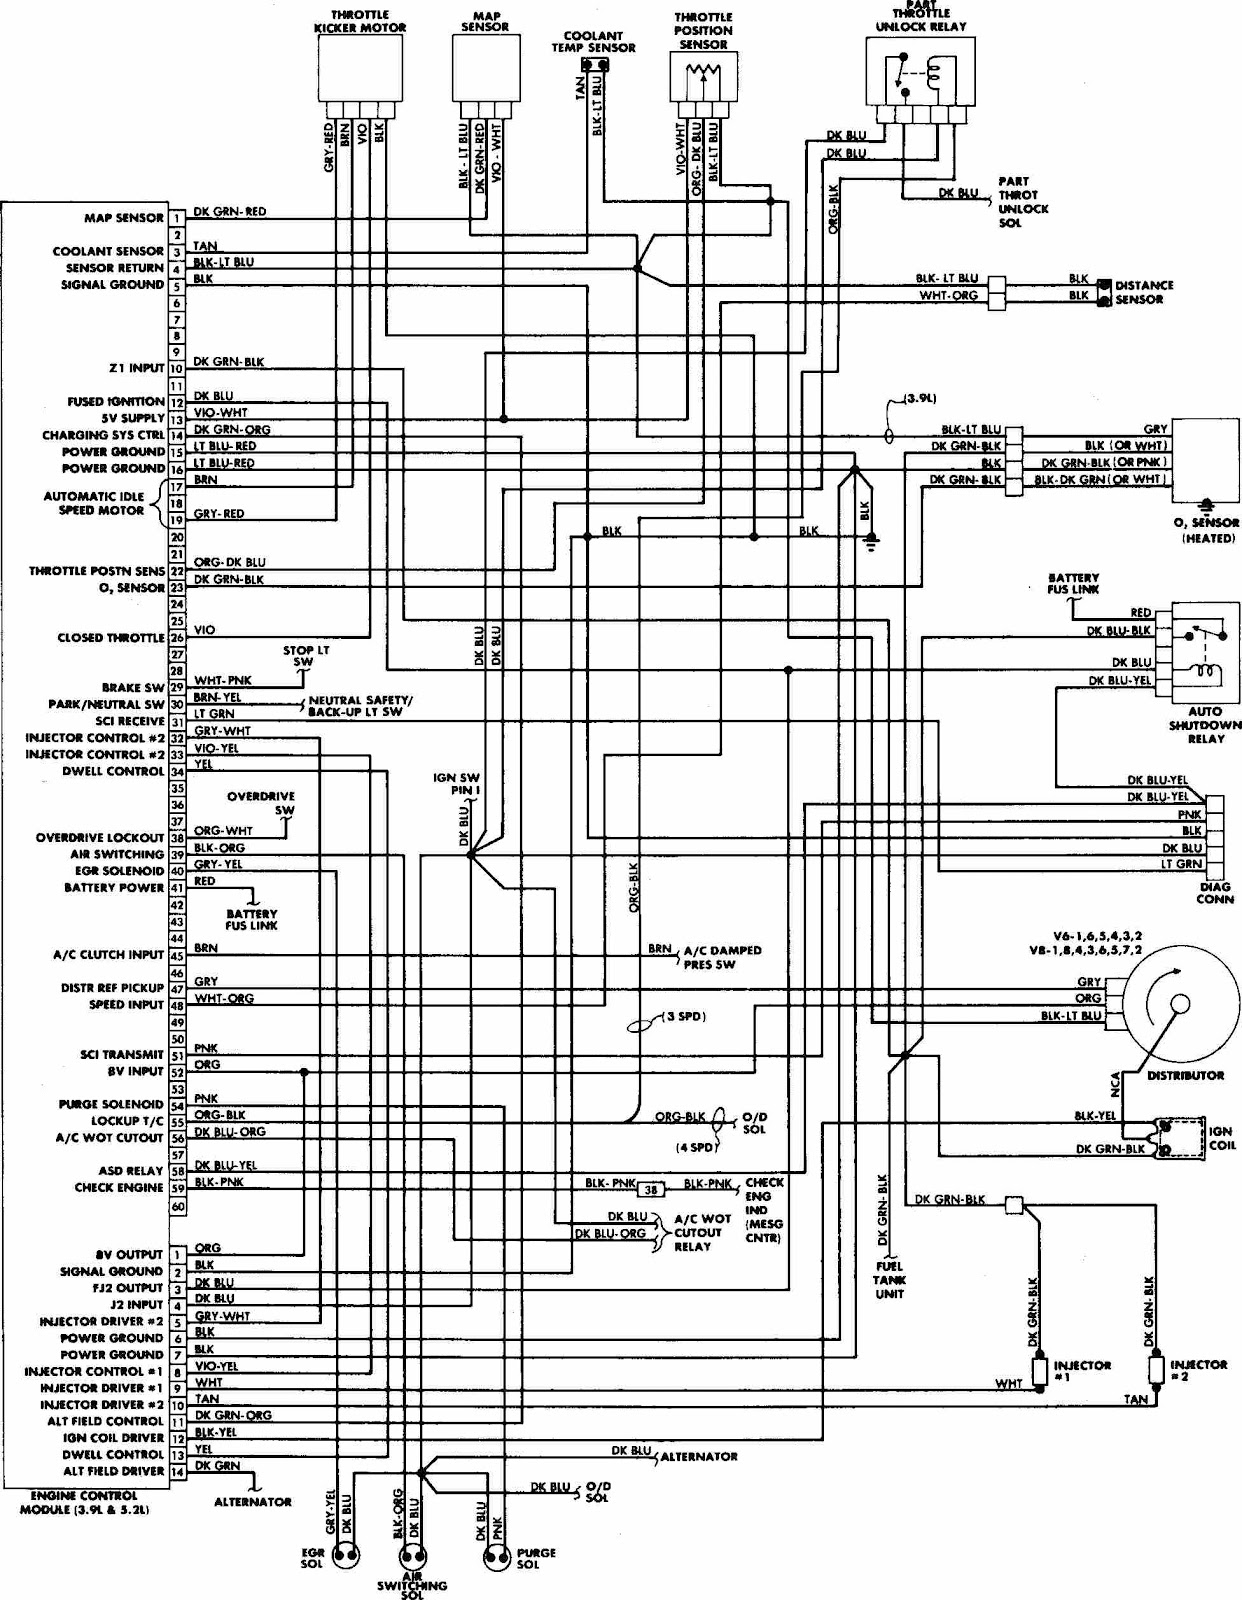 94 Gmc Radio Wiring C1500 Diagram Free Picture Library Dodge W100 1988 Engine Control All About Diagrams 2011 Sierra 1994